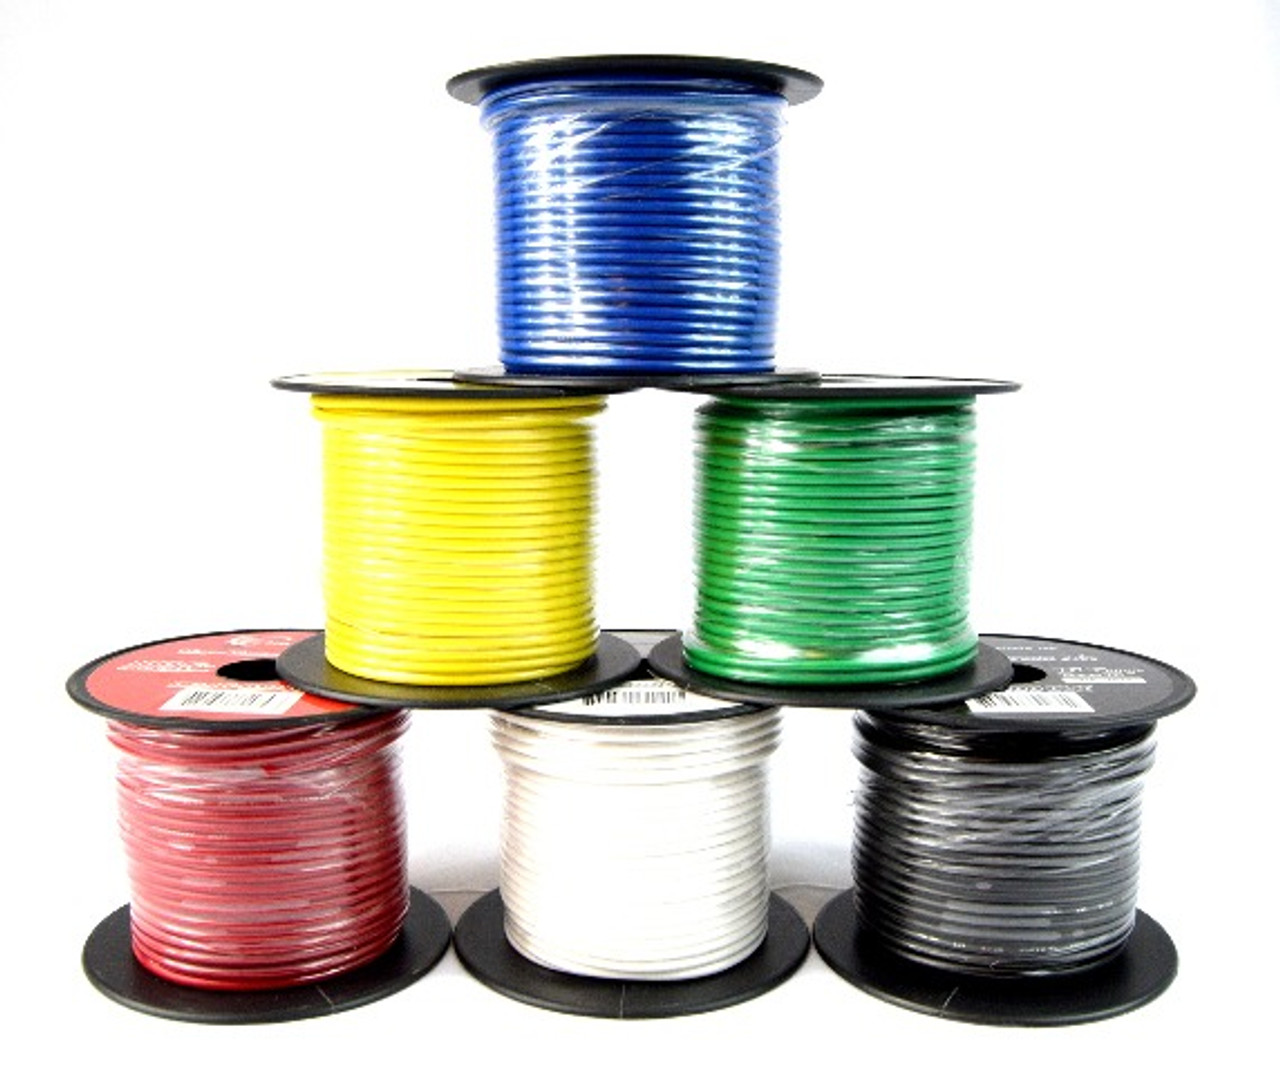 6 Rolls 16 Gauge 100 Feet Single Conductor Stranded Remote Wire 600 Total